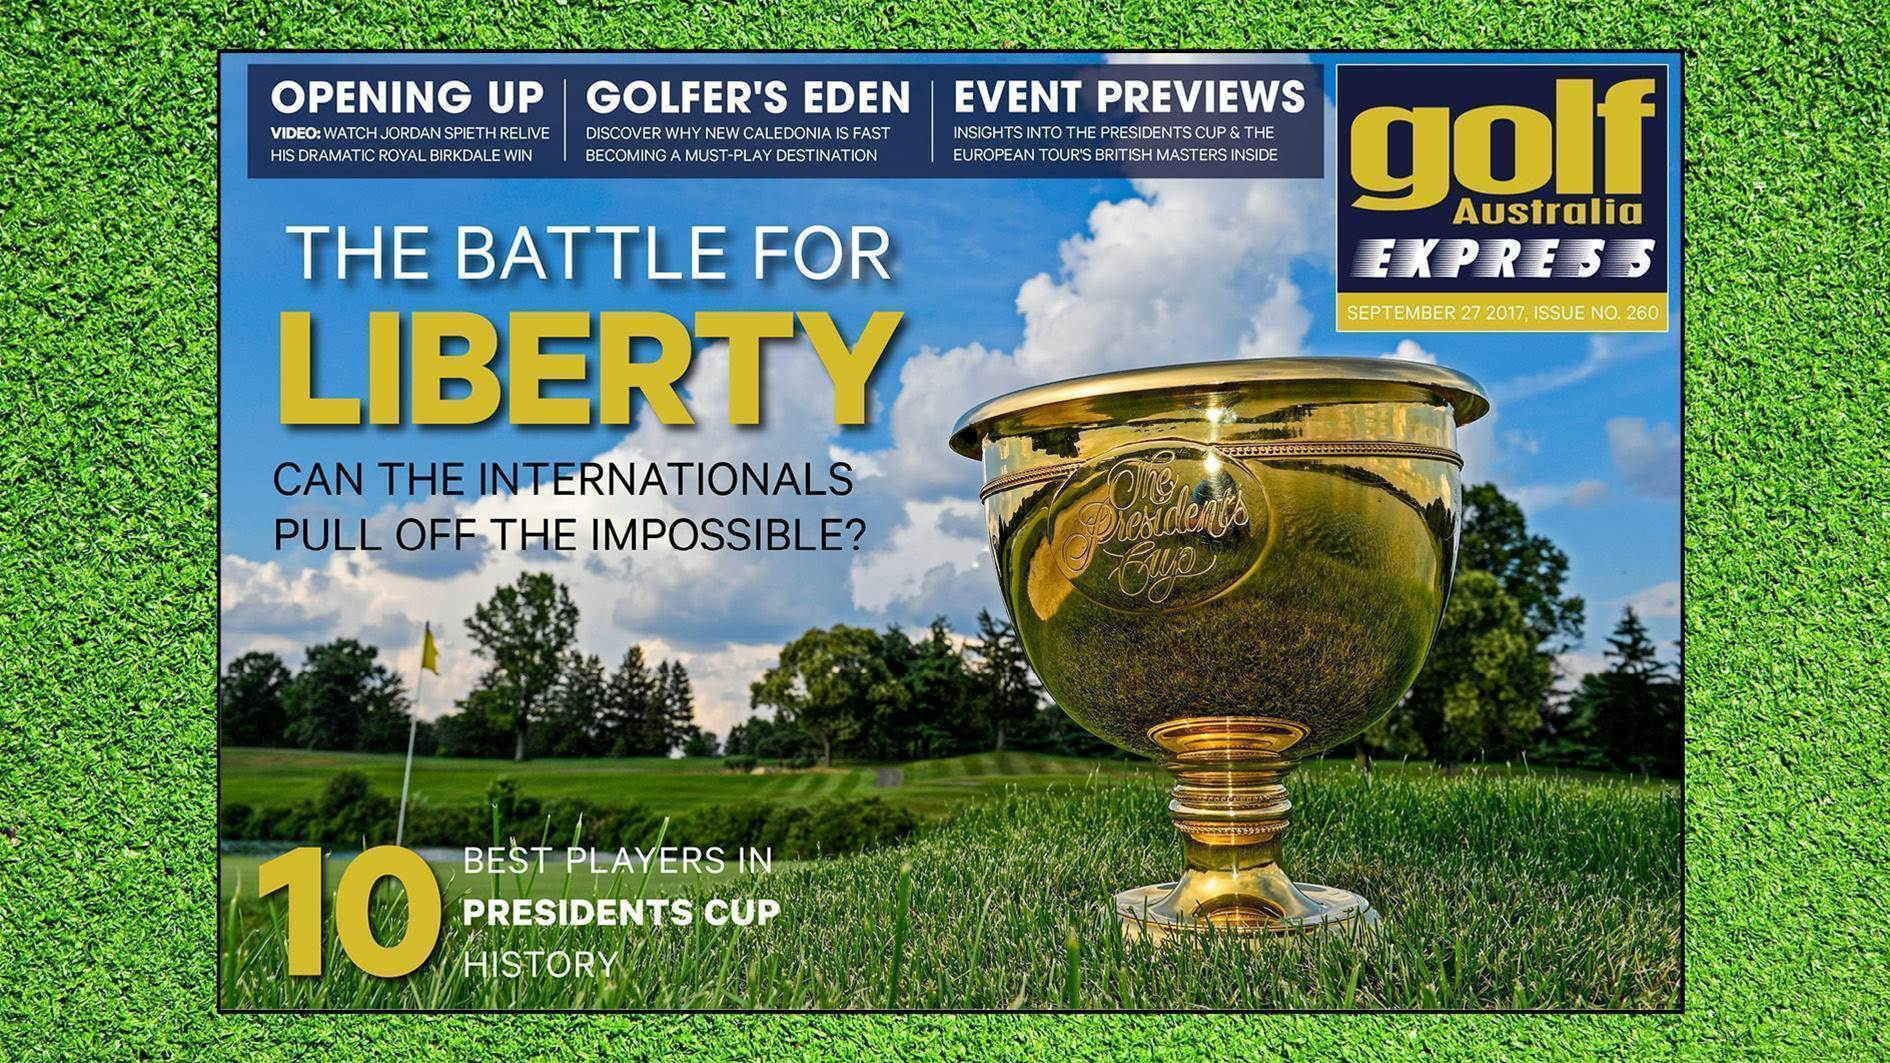 GA Express #260: Presidents Cup preview